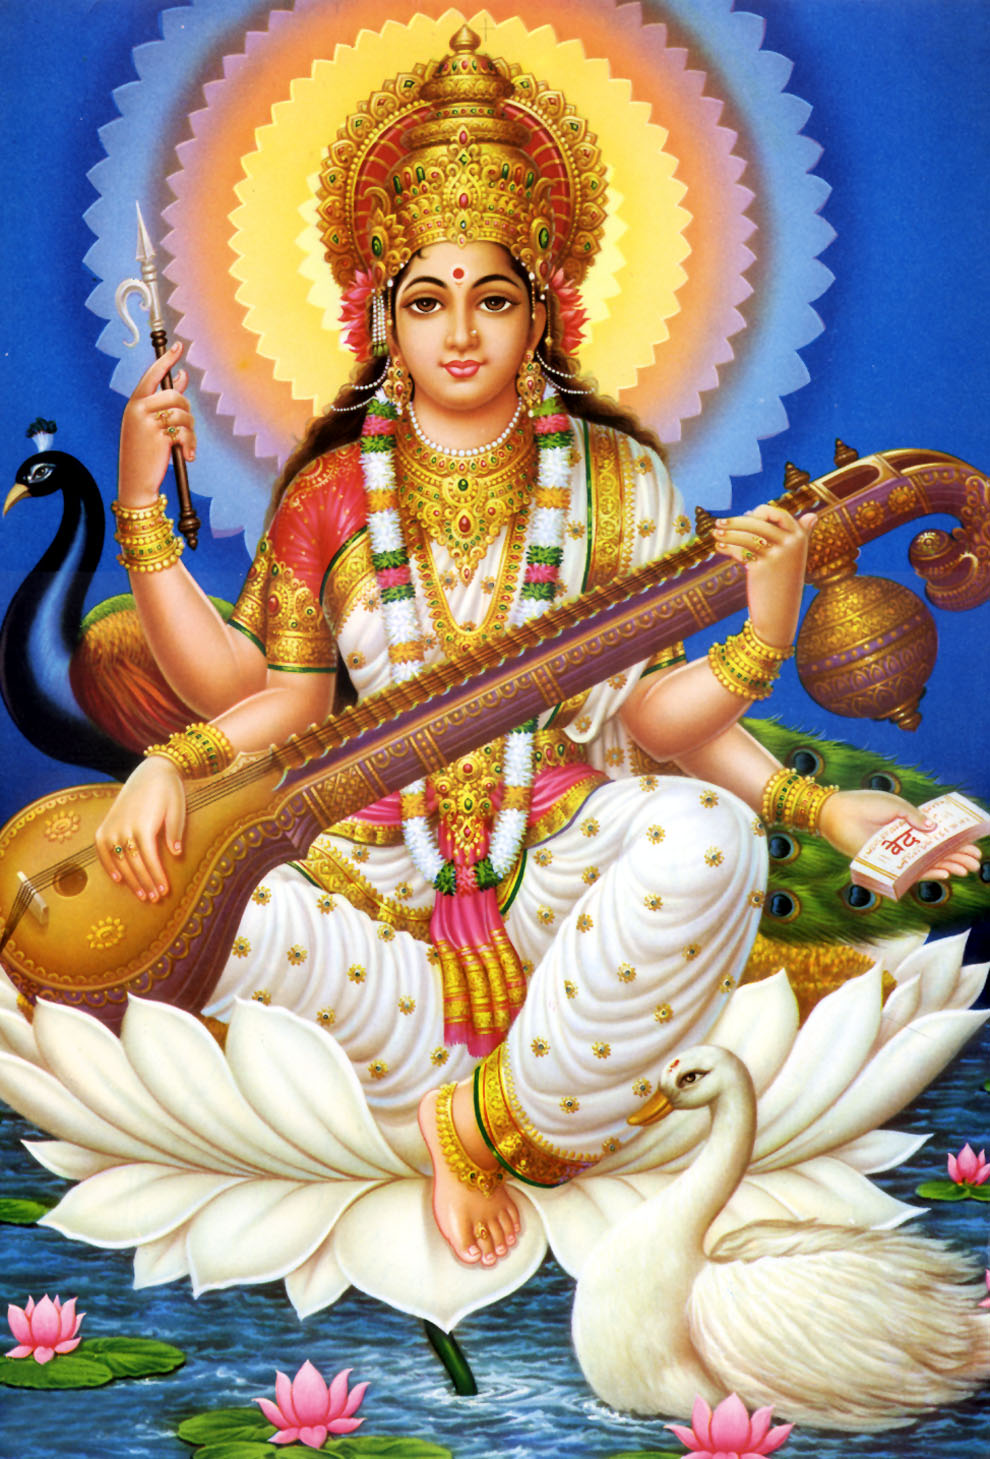 Wonderful Wallpaper Lord Devi - sarasvati528  Image_734850.jpg